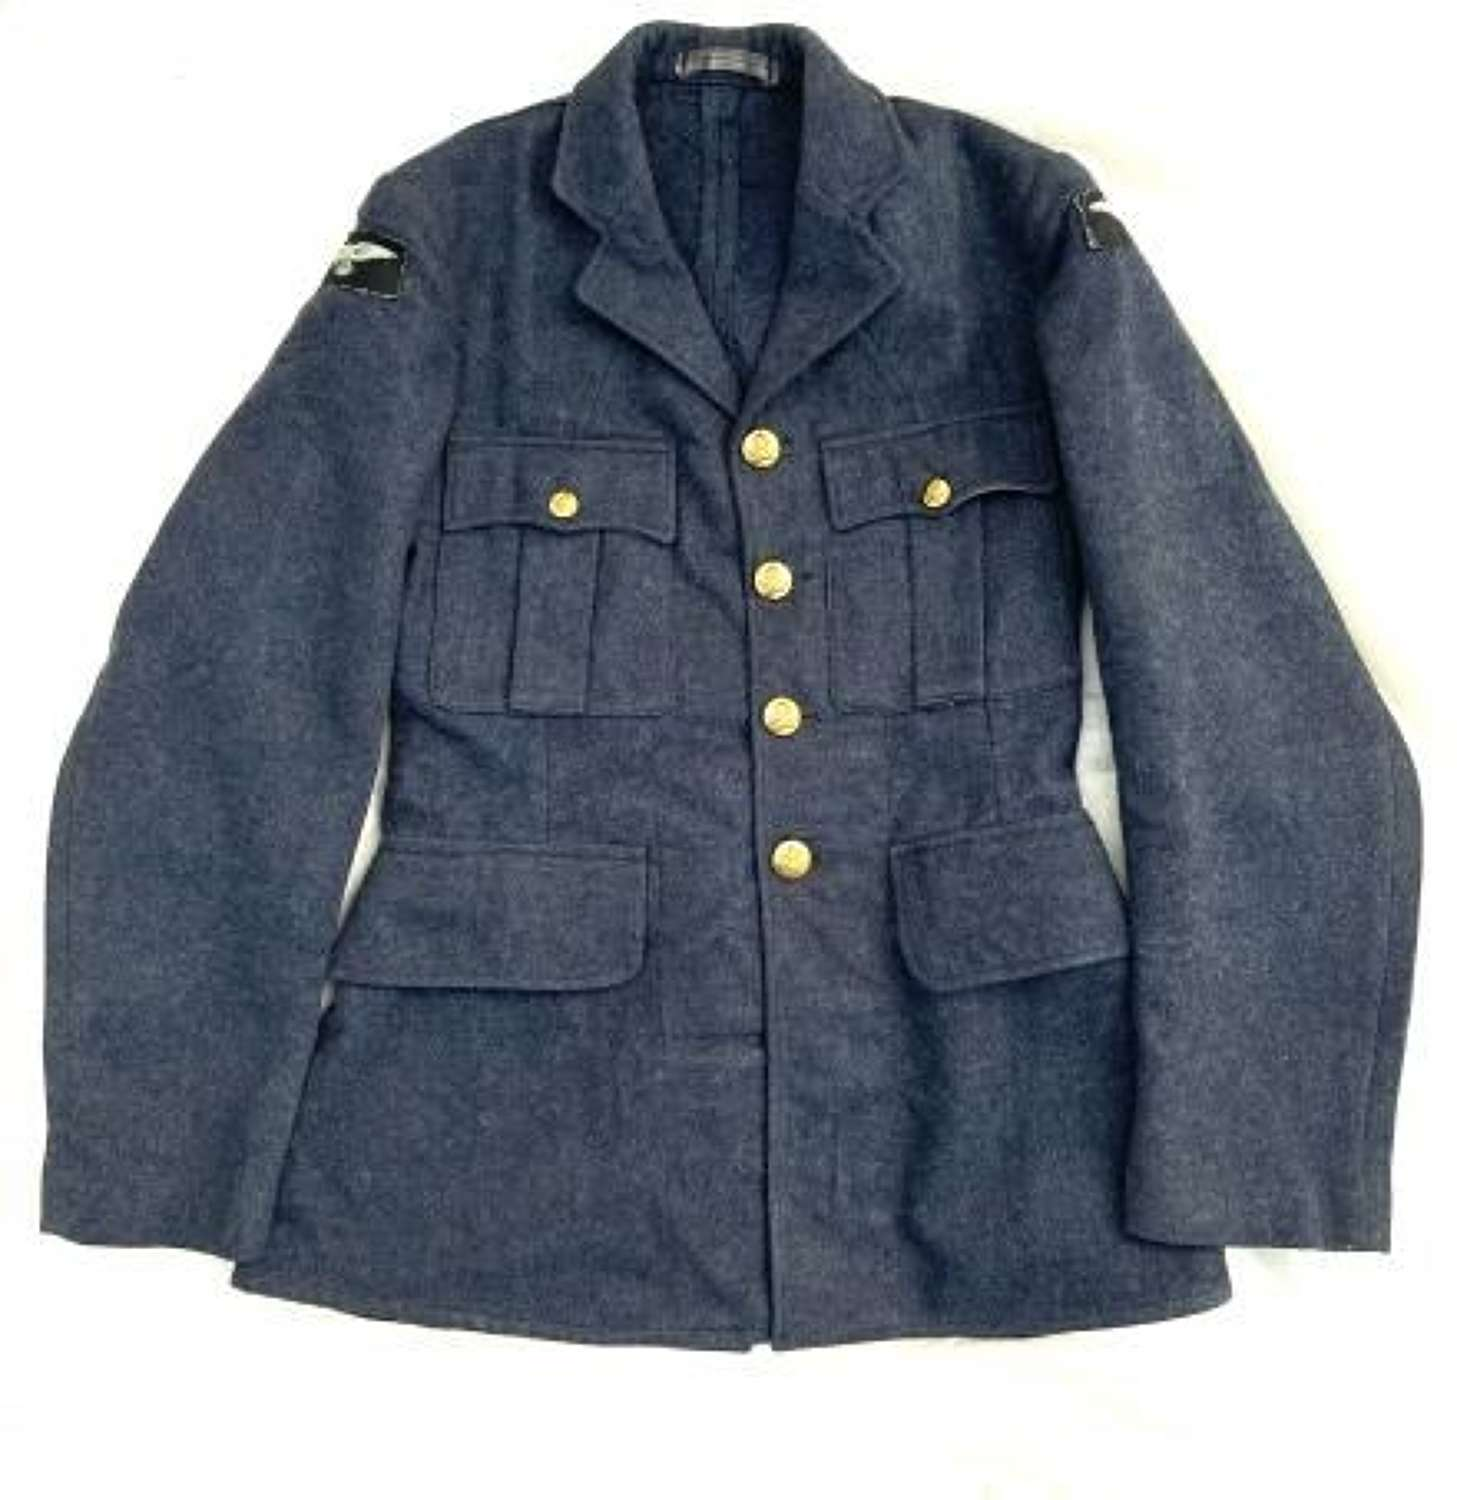 Original 1947 Dated RAF Ordinary Airman's Tunic - Size 7